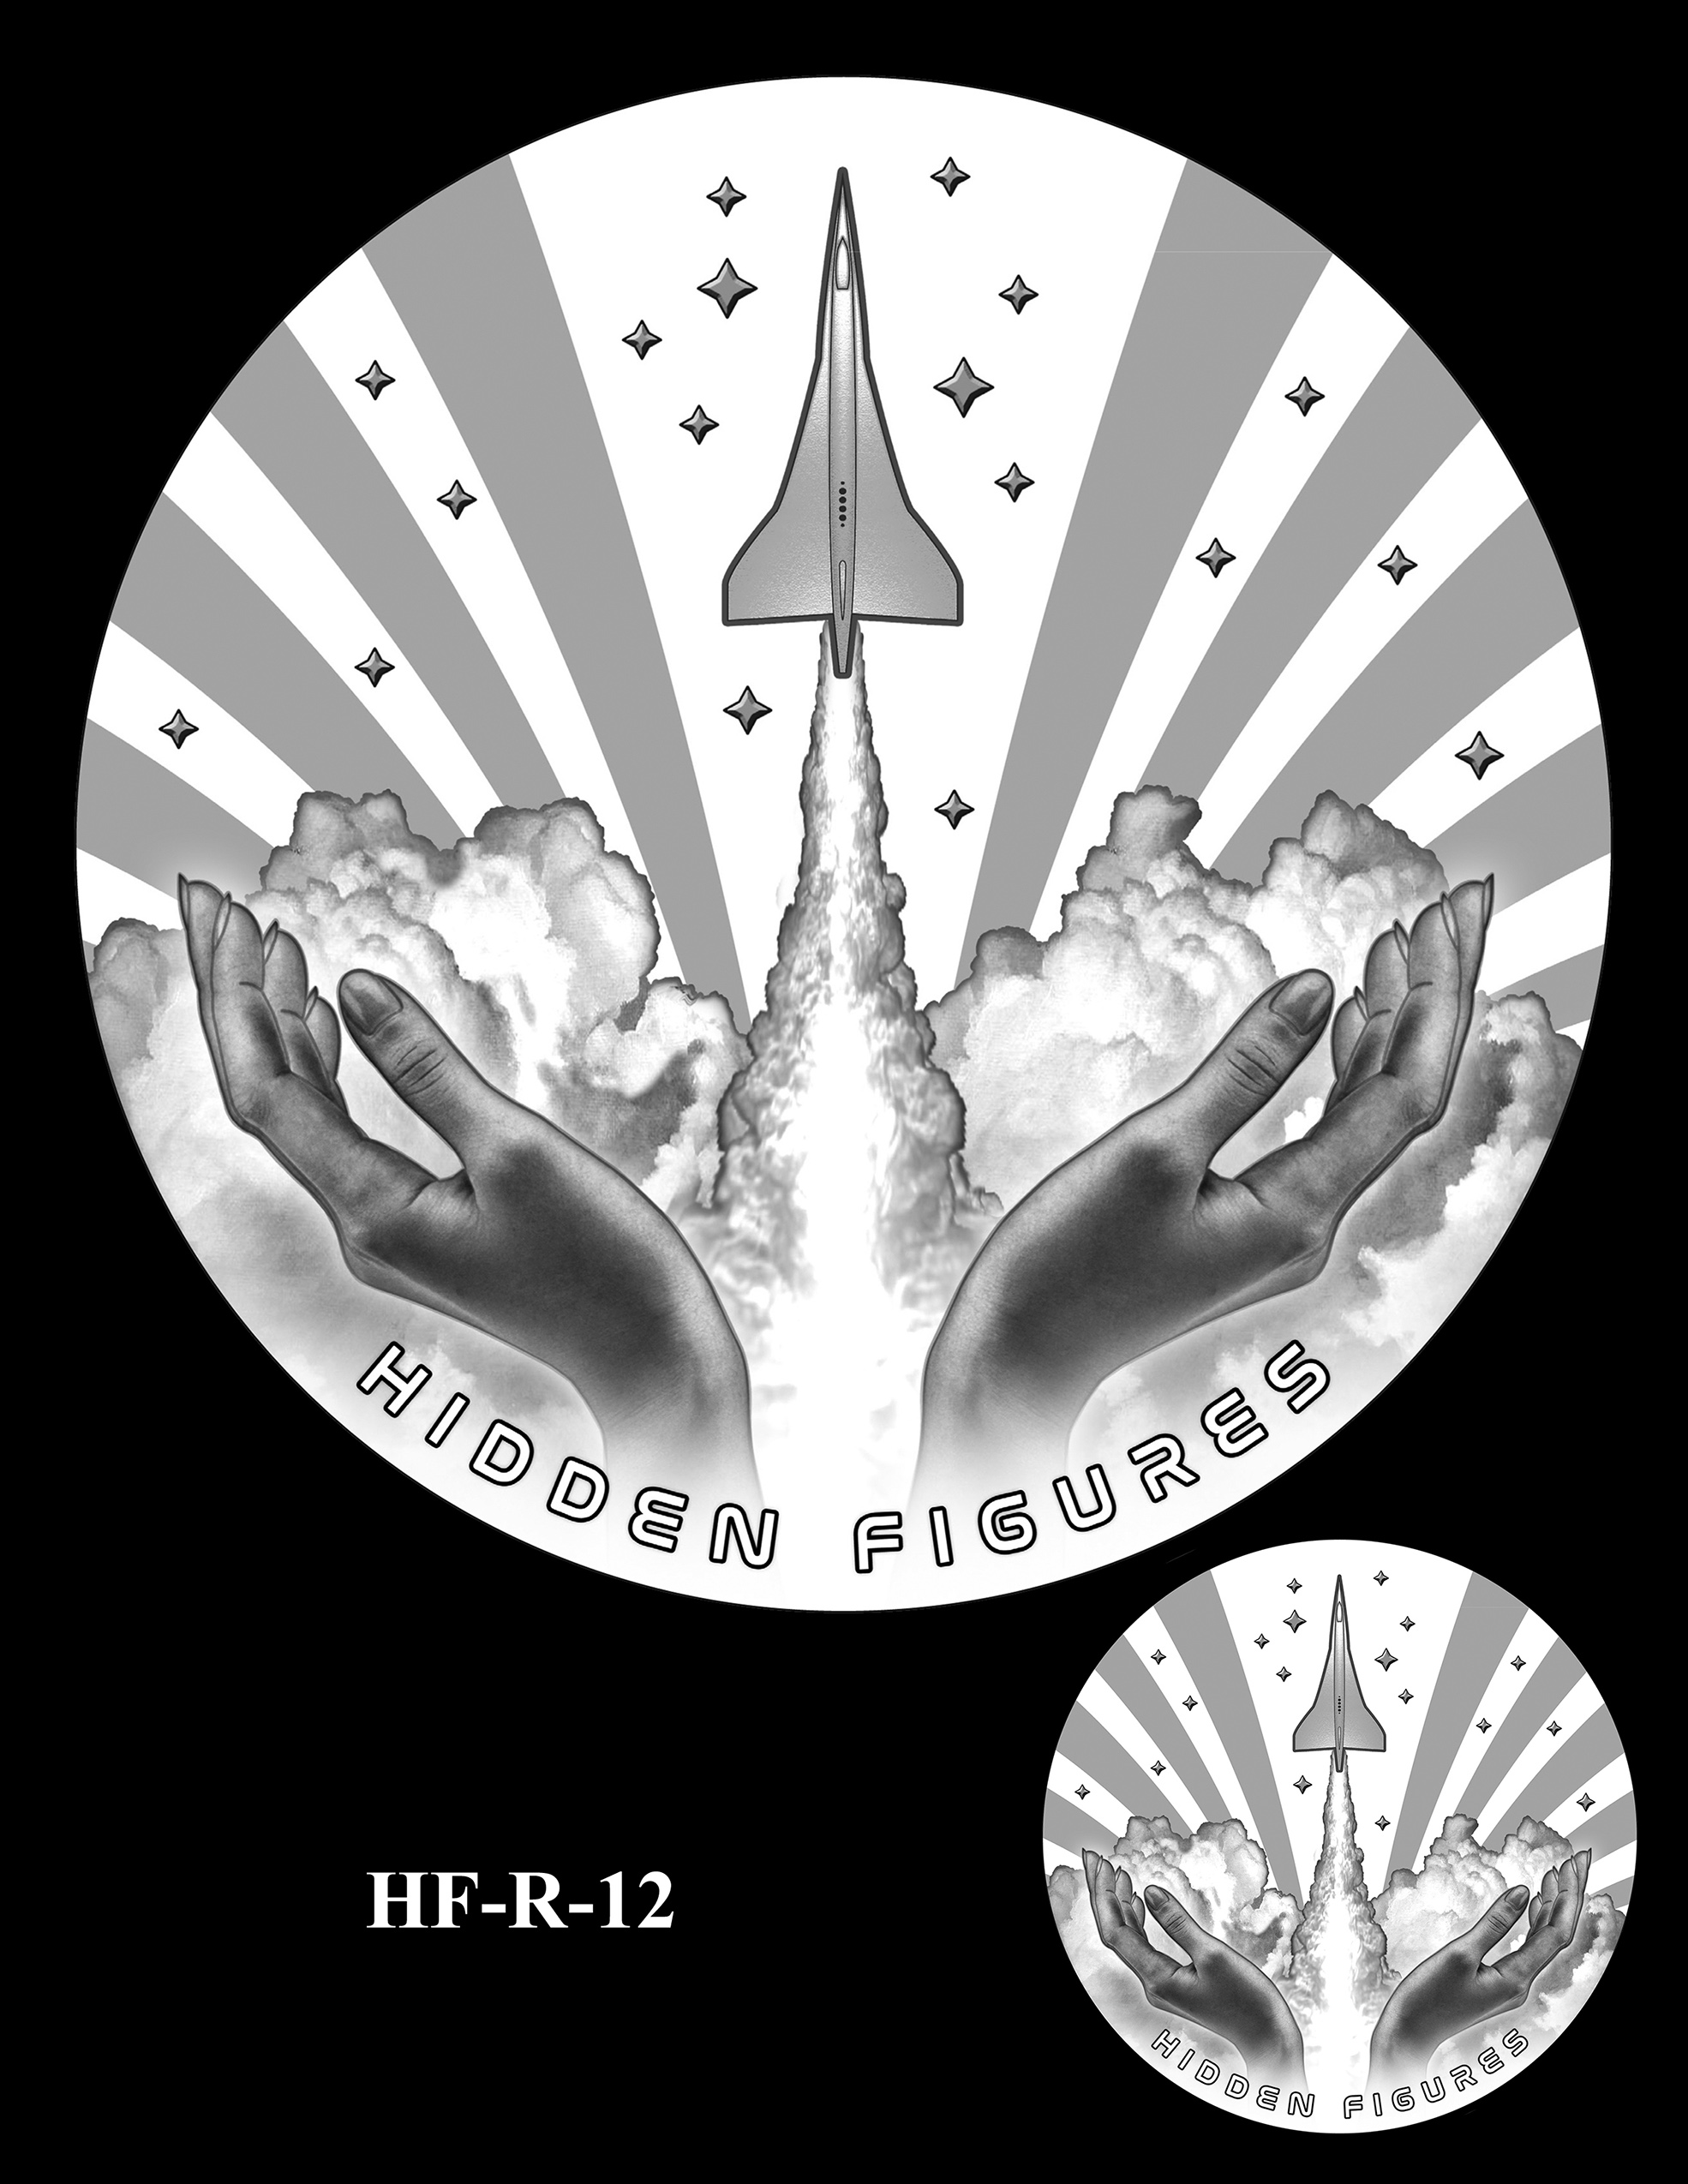 HF-R-12 -- Hidden Figures Group Congressional Gold Medal